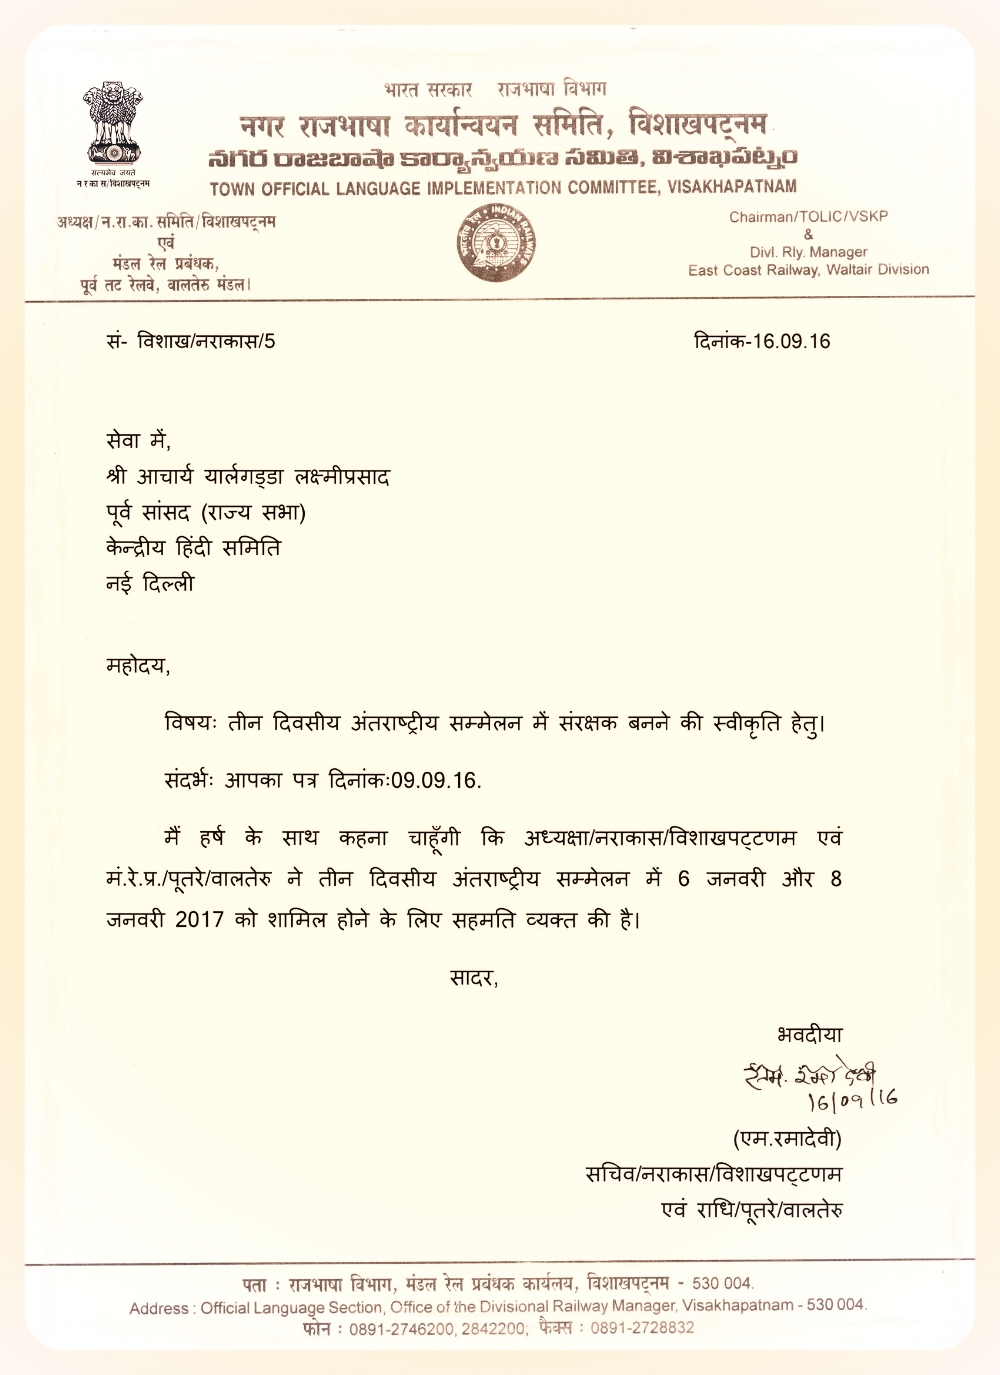 letter of support from Rajbhasha implementation Committee